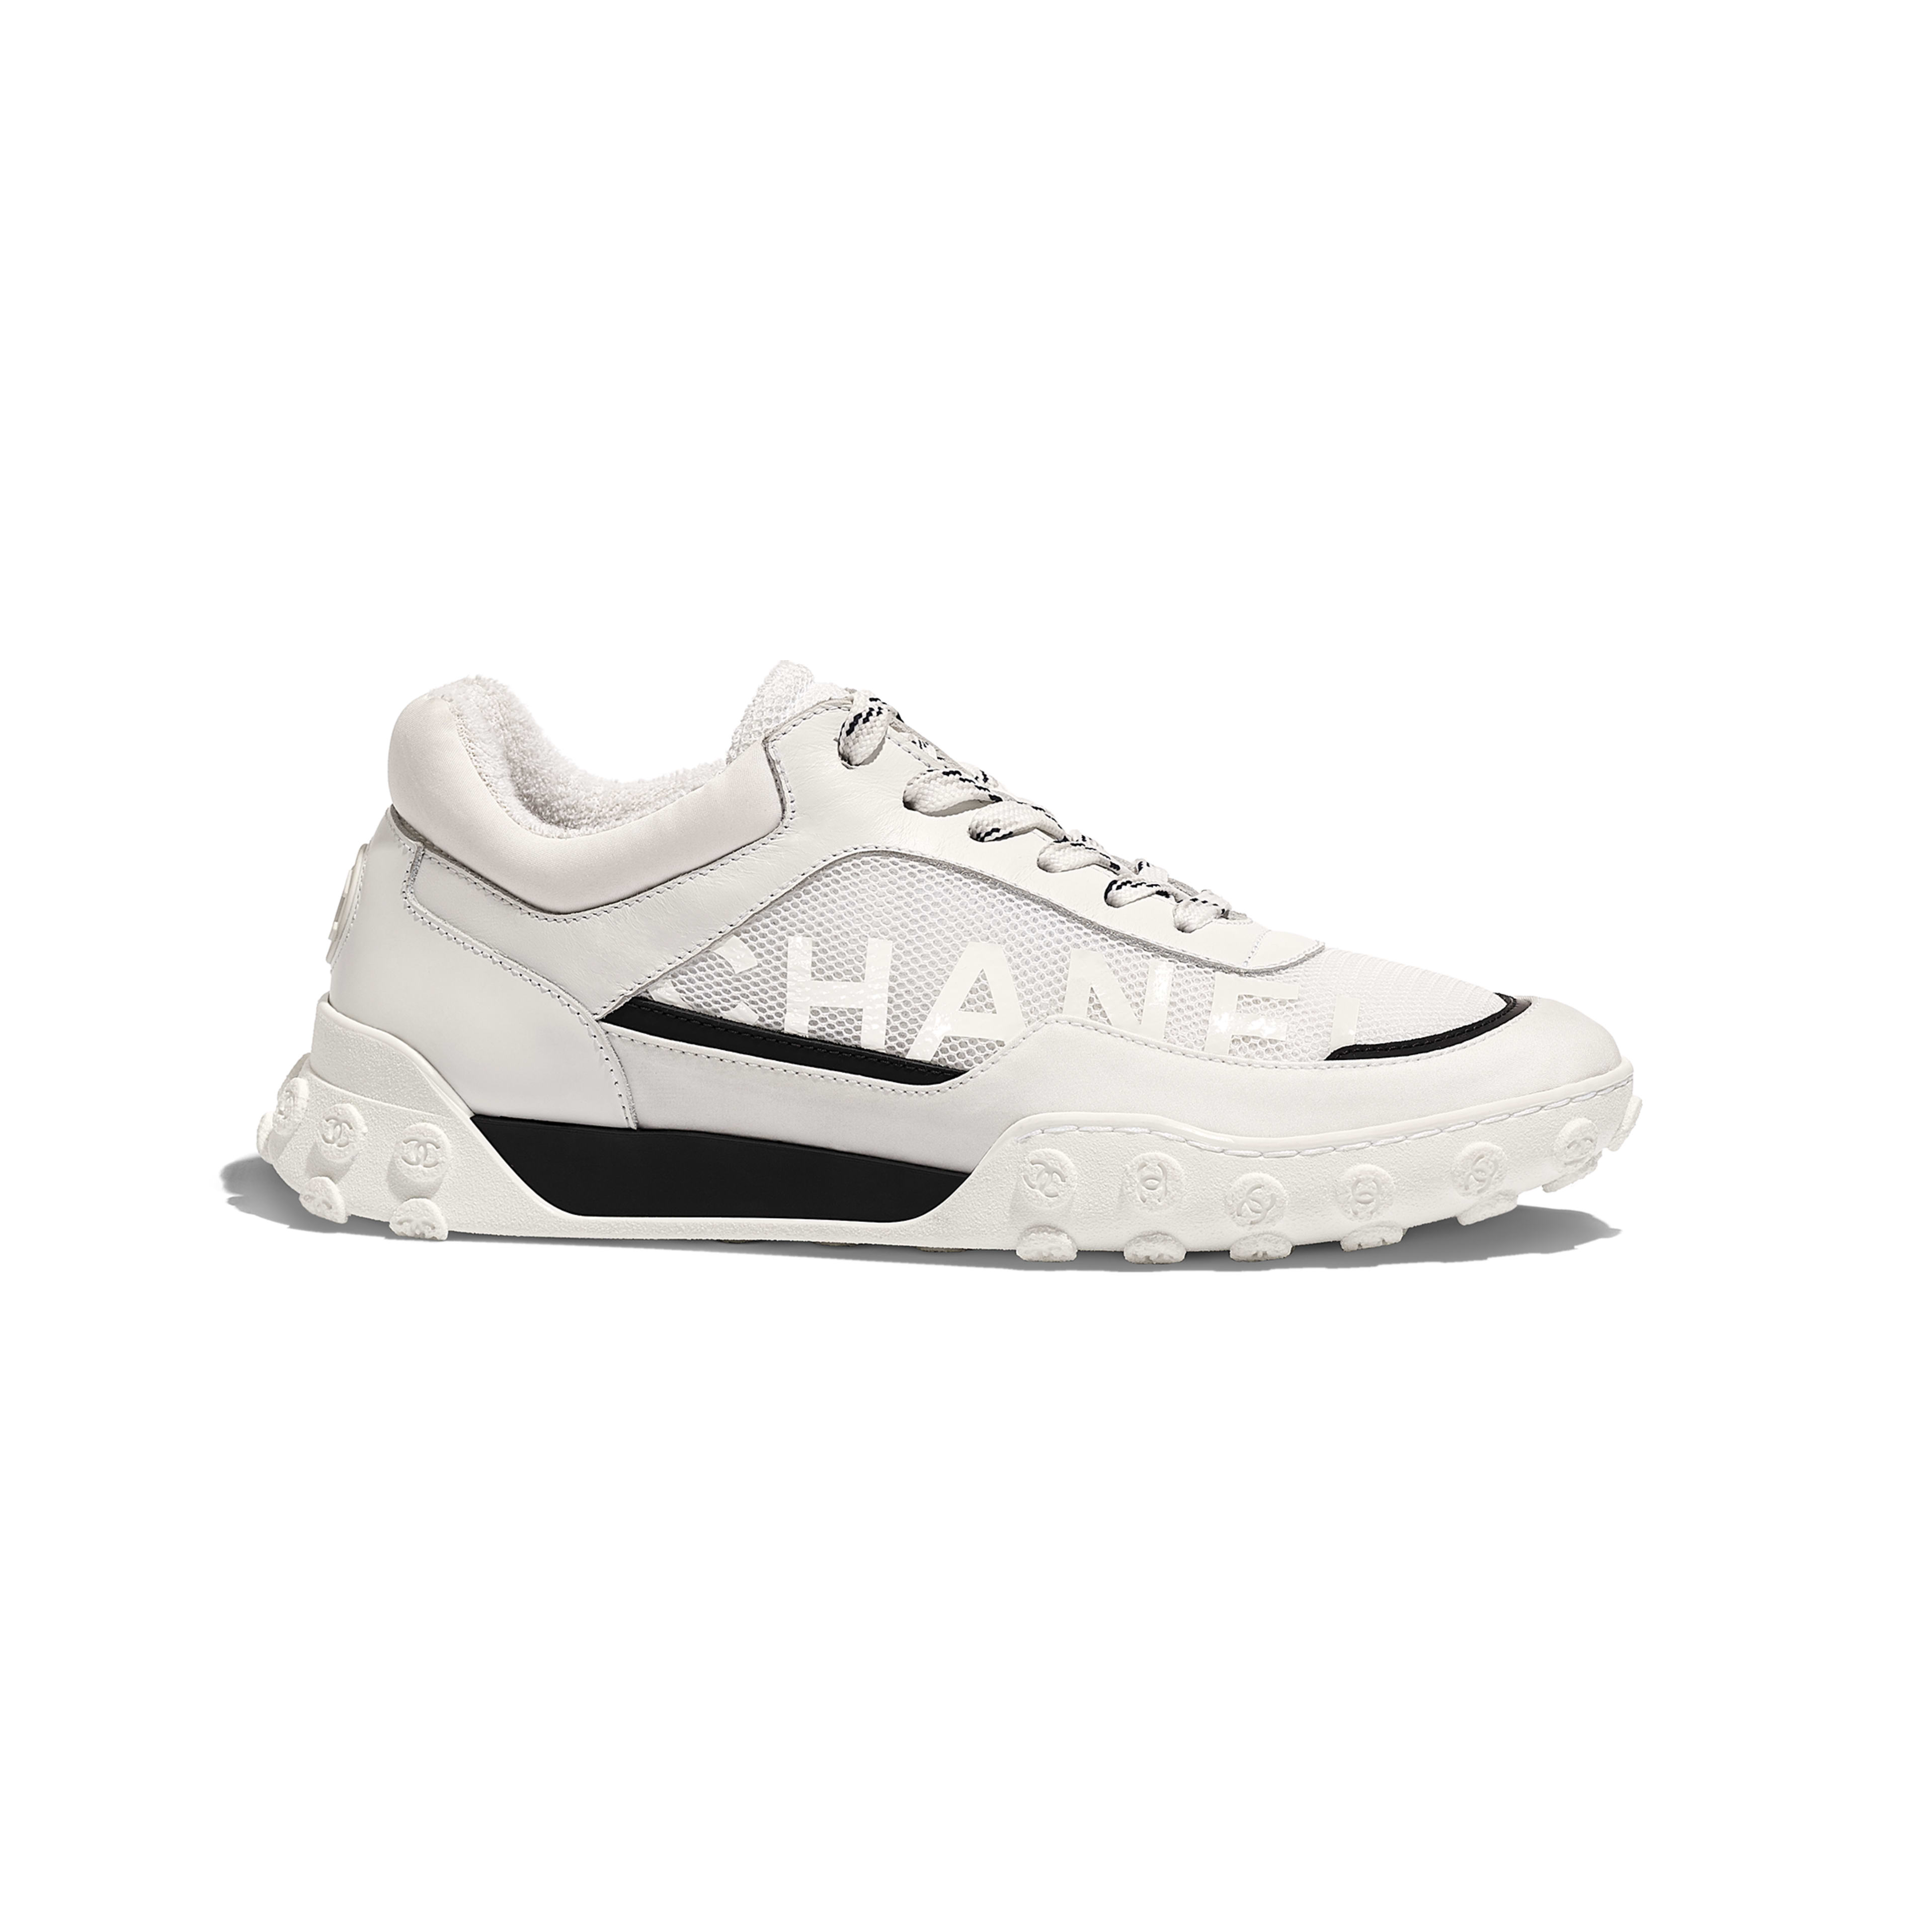 Sneakers - White - Calfskin, Mesh & Lycra - Default view - see full sized version